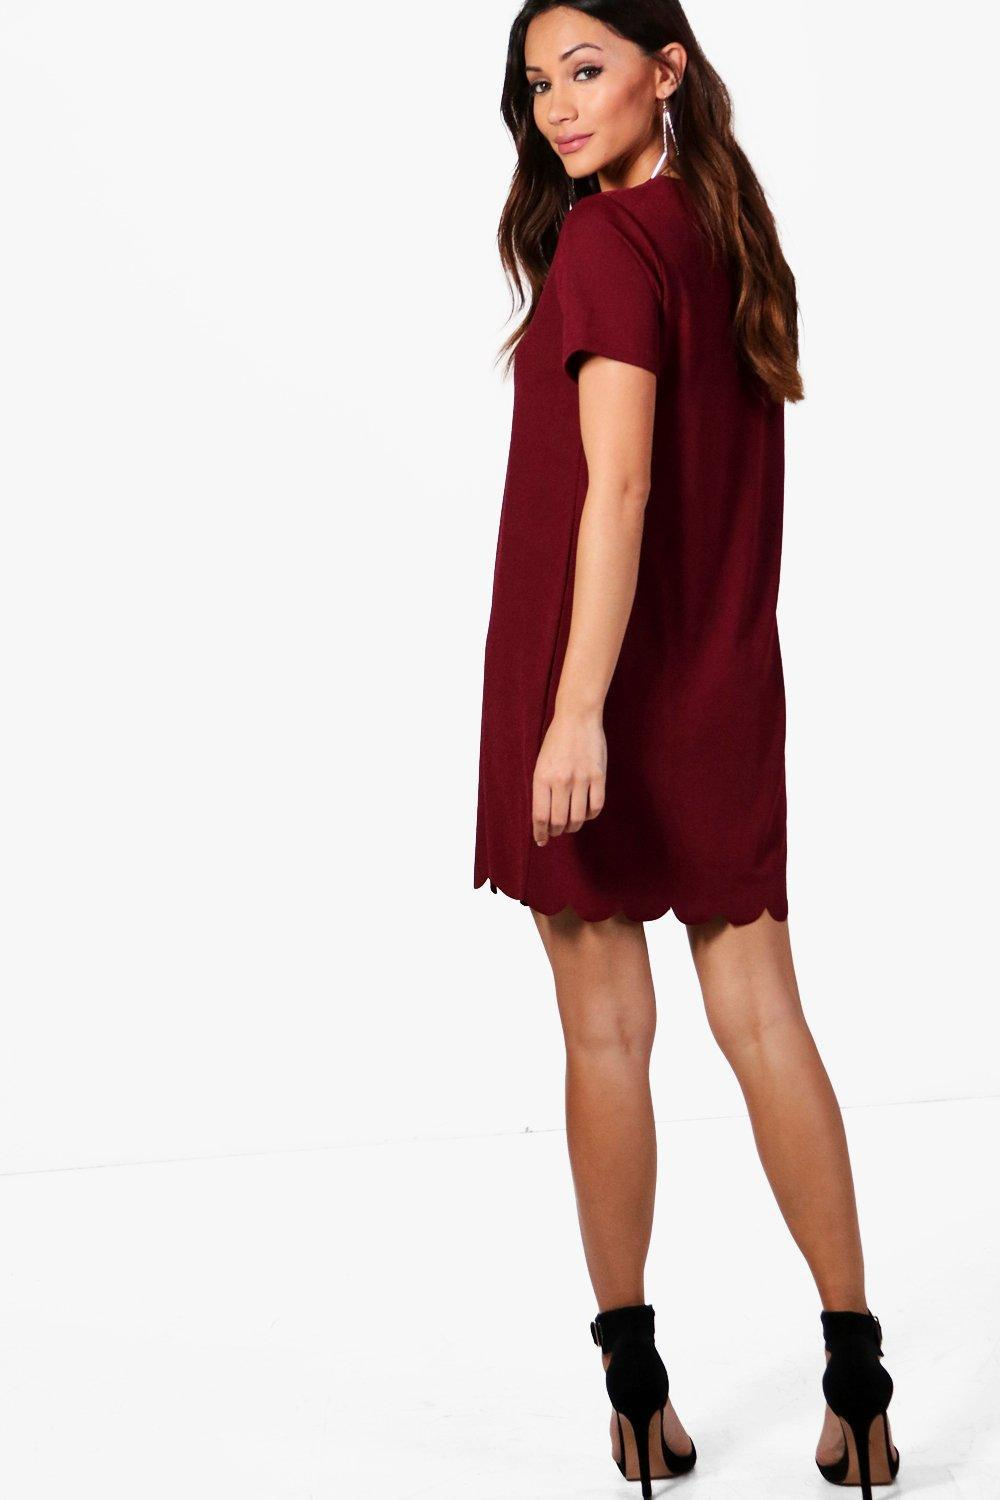 984fbb0ca6fd Gallery. Previously sold at: Boohoo · Women's Scalloped Dresses ...